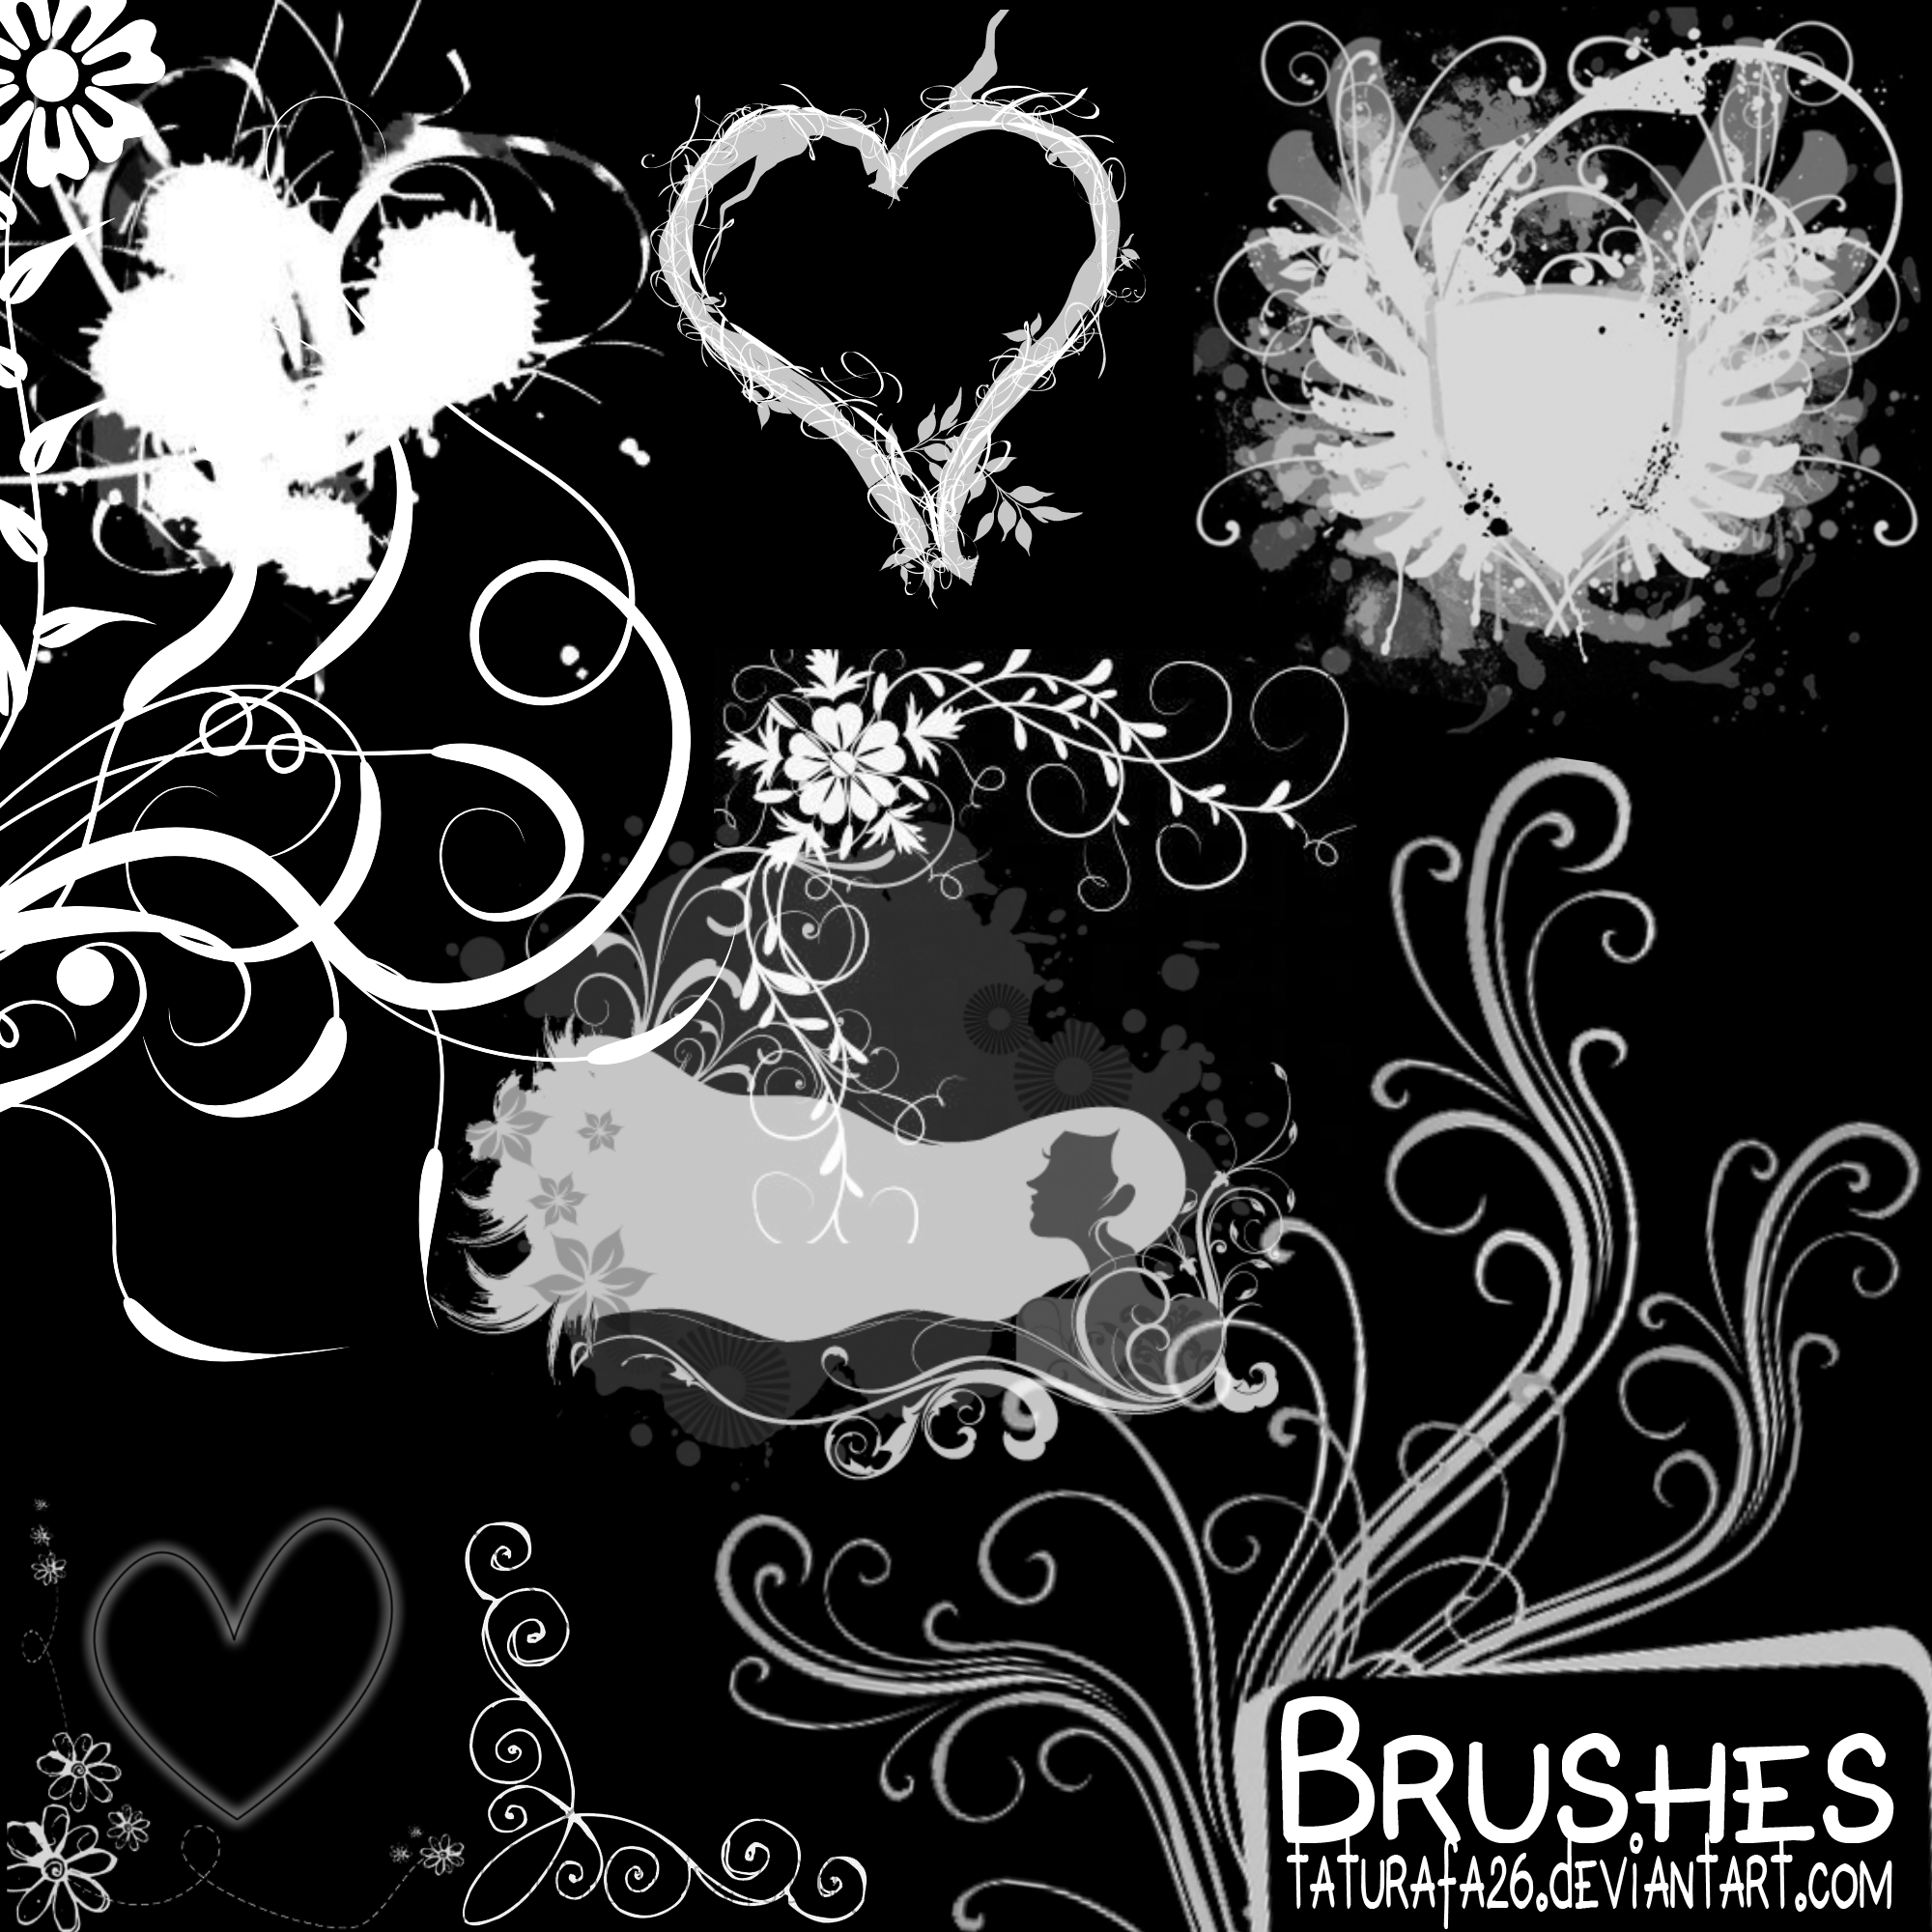 Brushes 1 by TATURAFA-26